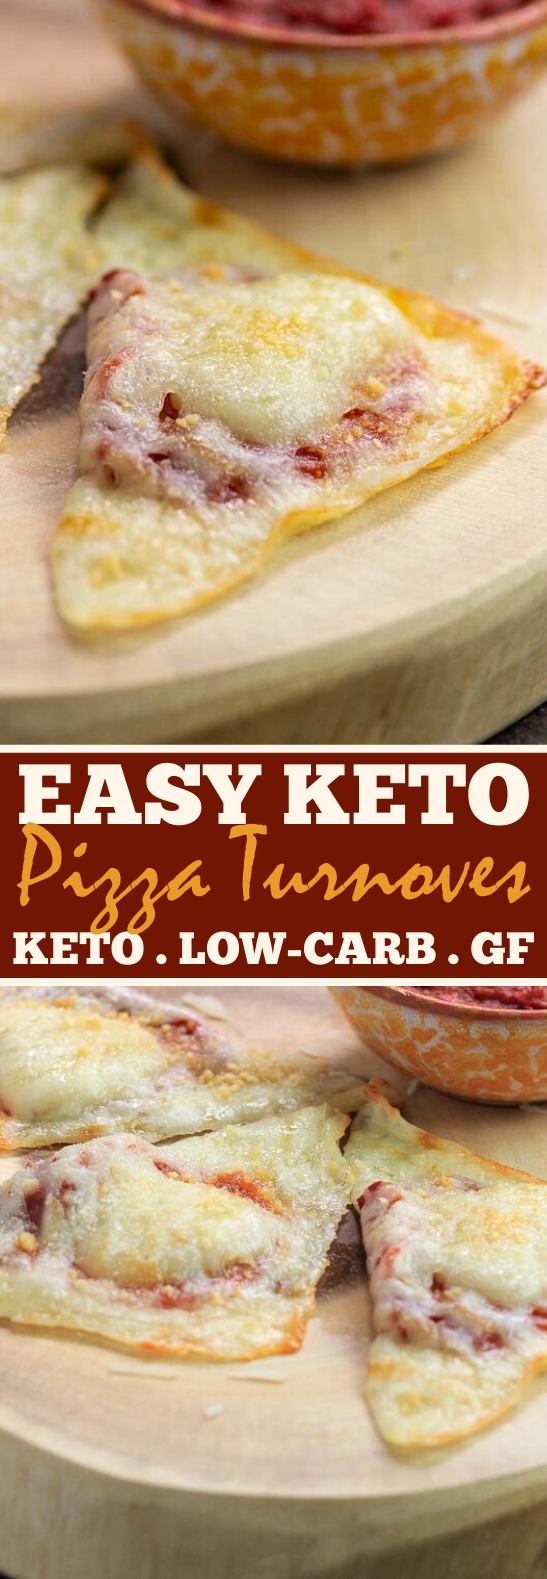 Easy Keto Pizza Turnovers #lowcarb #snacks #keto #appetizers #glutenfree